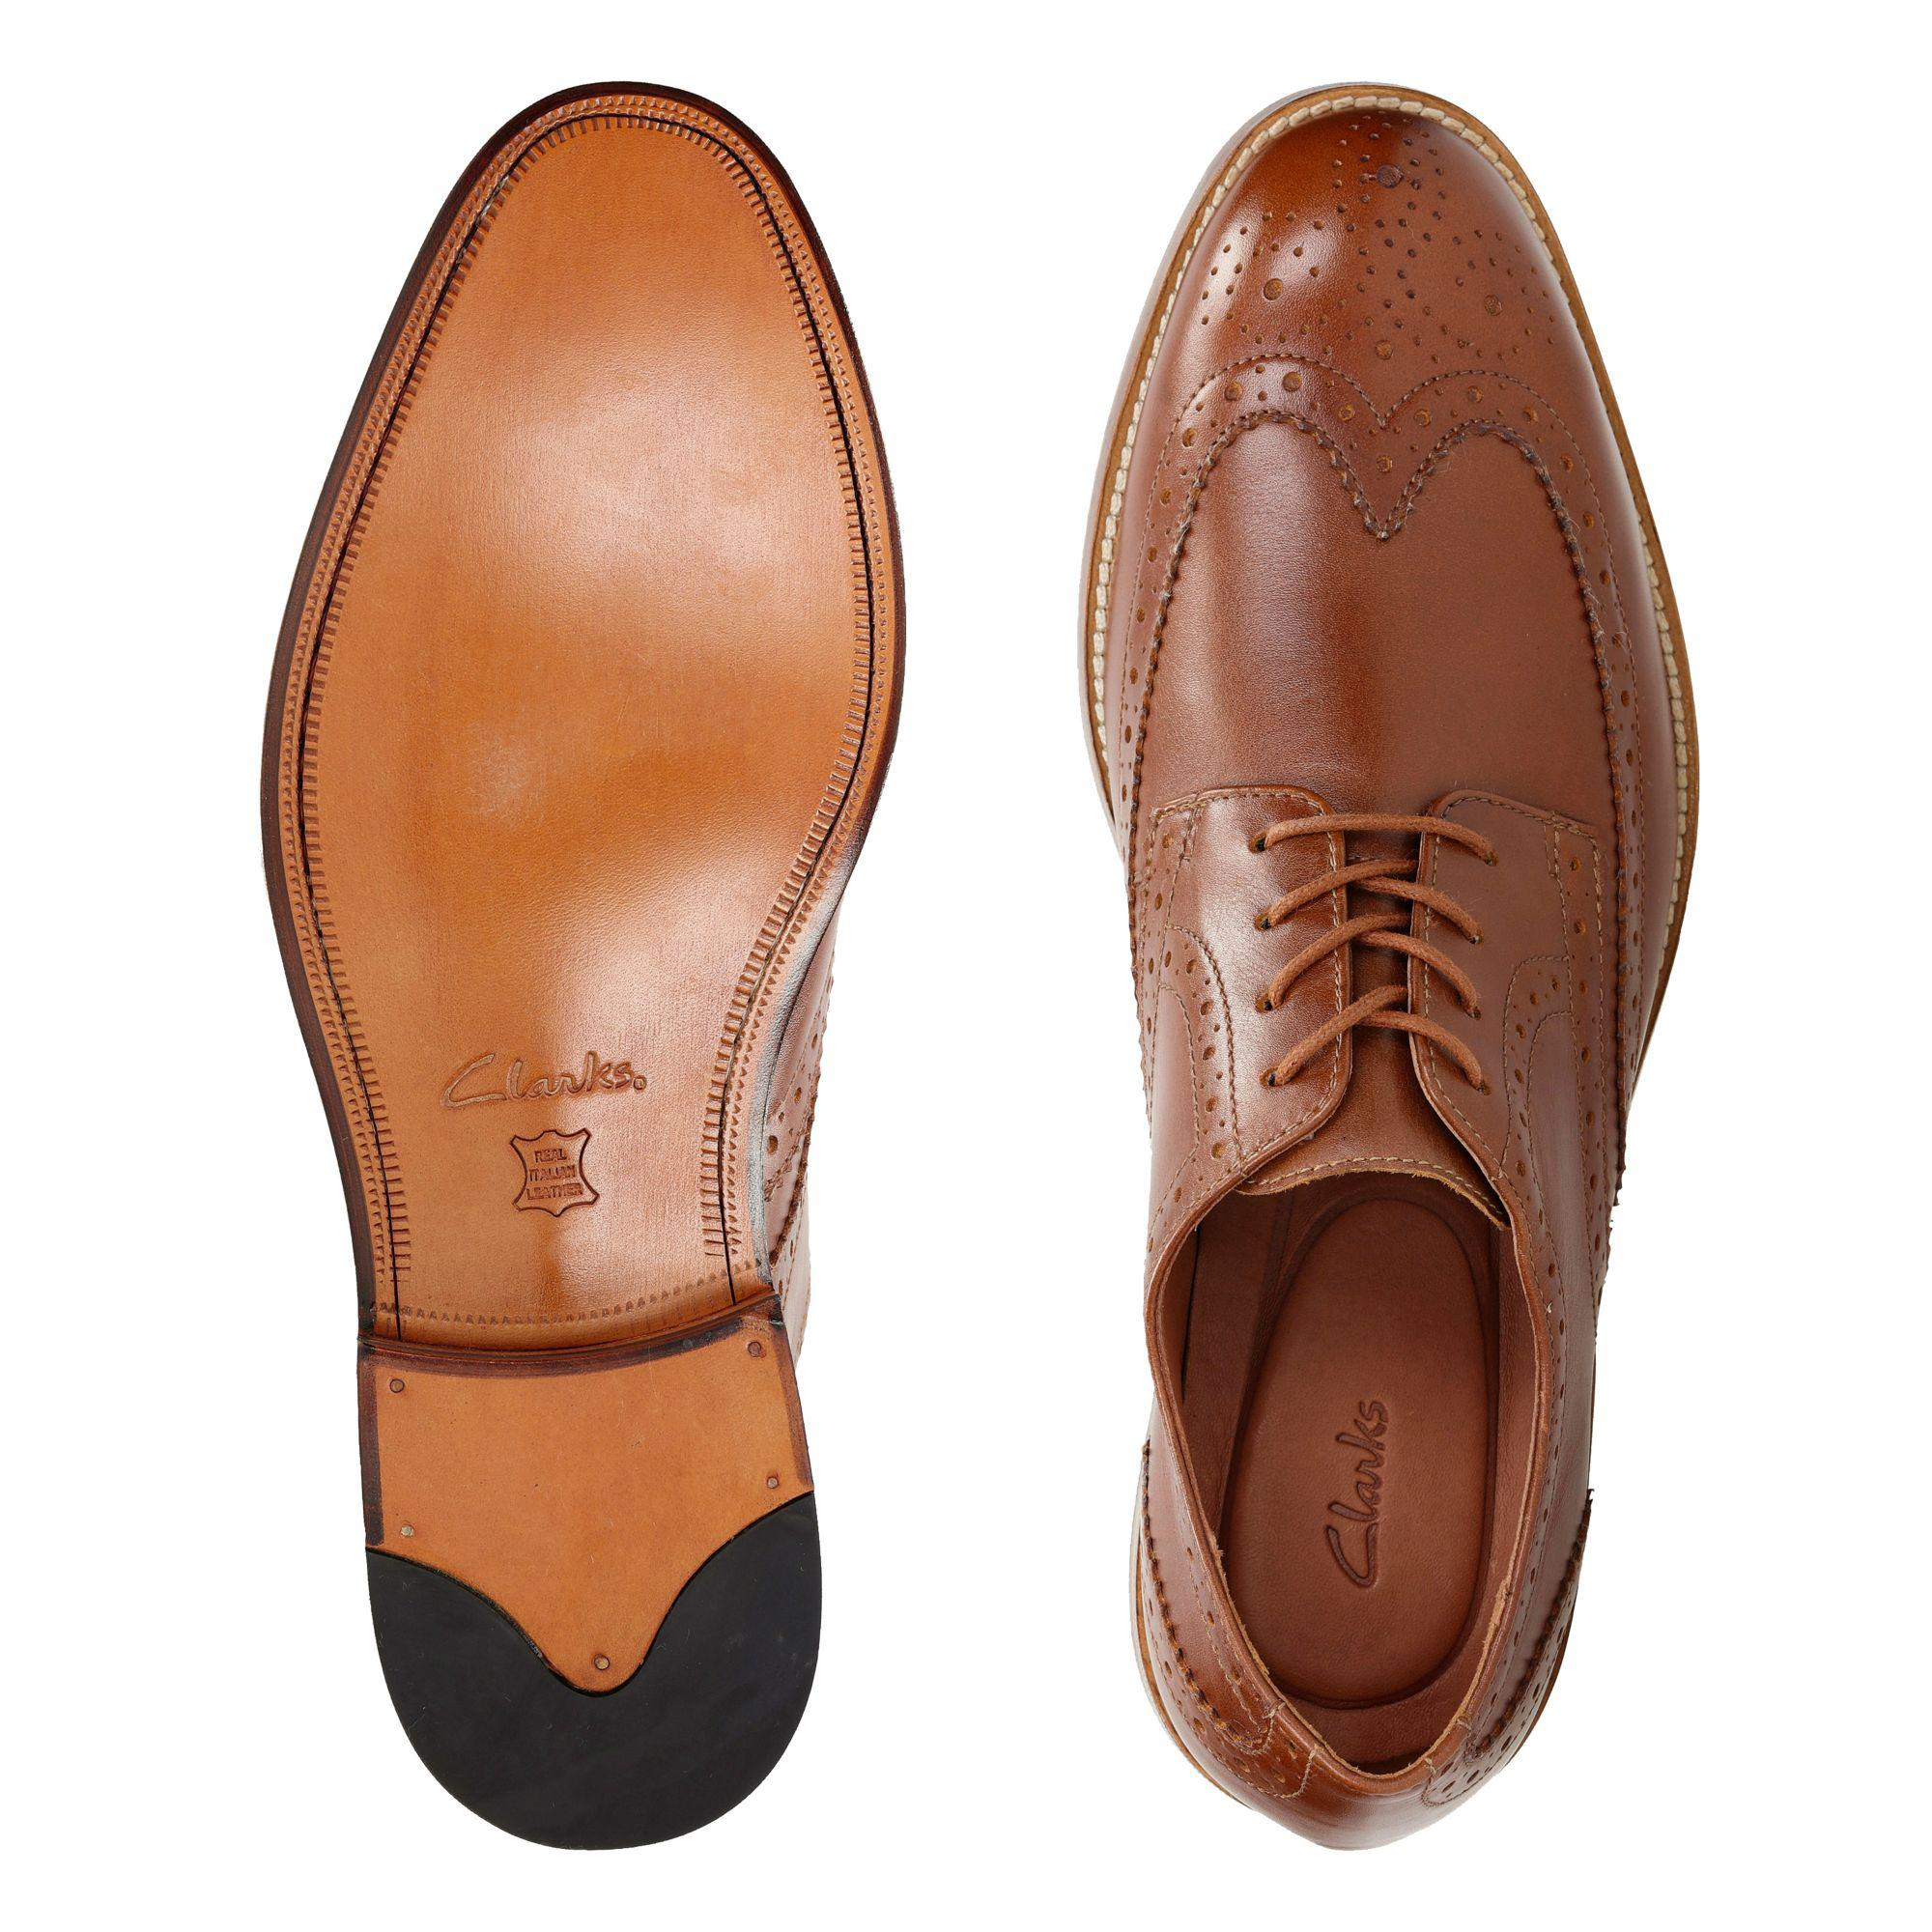 Dar Ópera Misterio  Clarks Leather James Wing in Tan Leather (Brown) for Men - Lyst